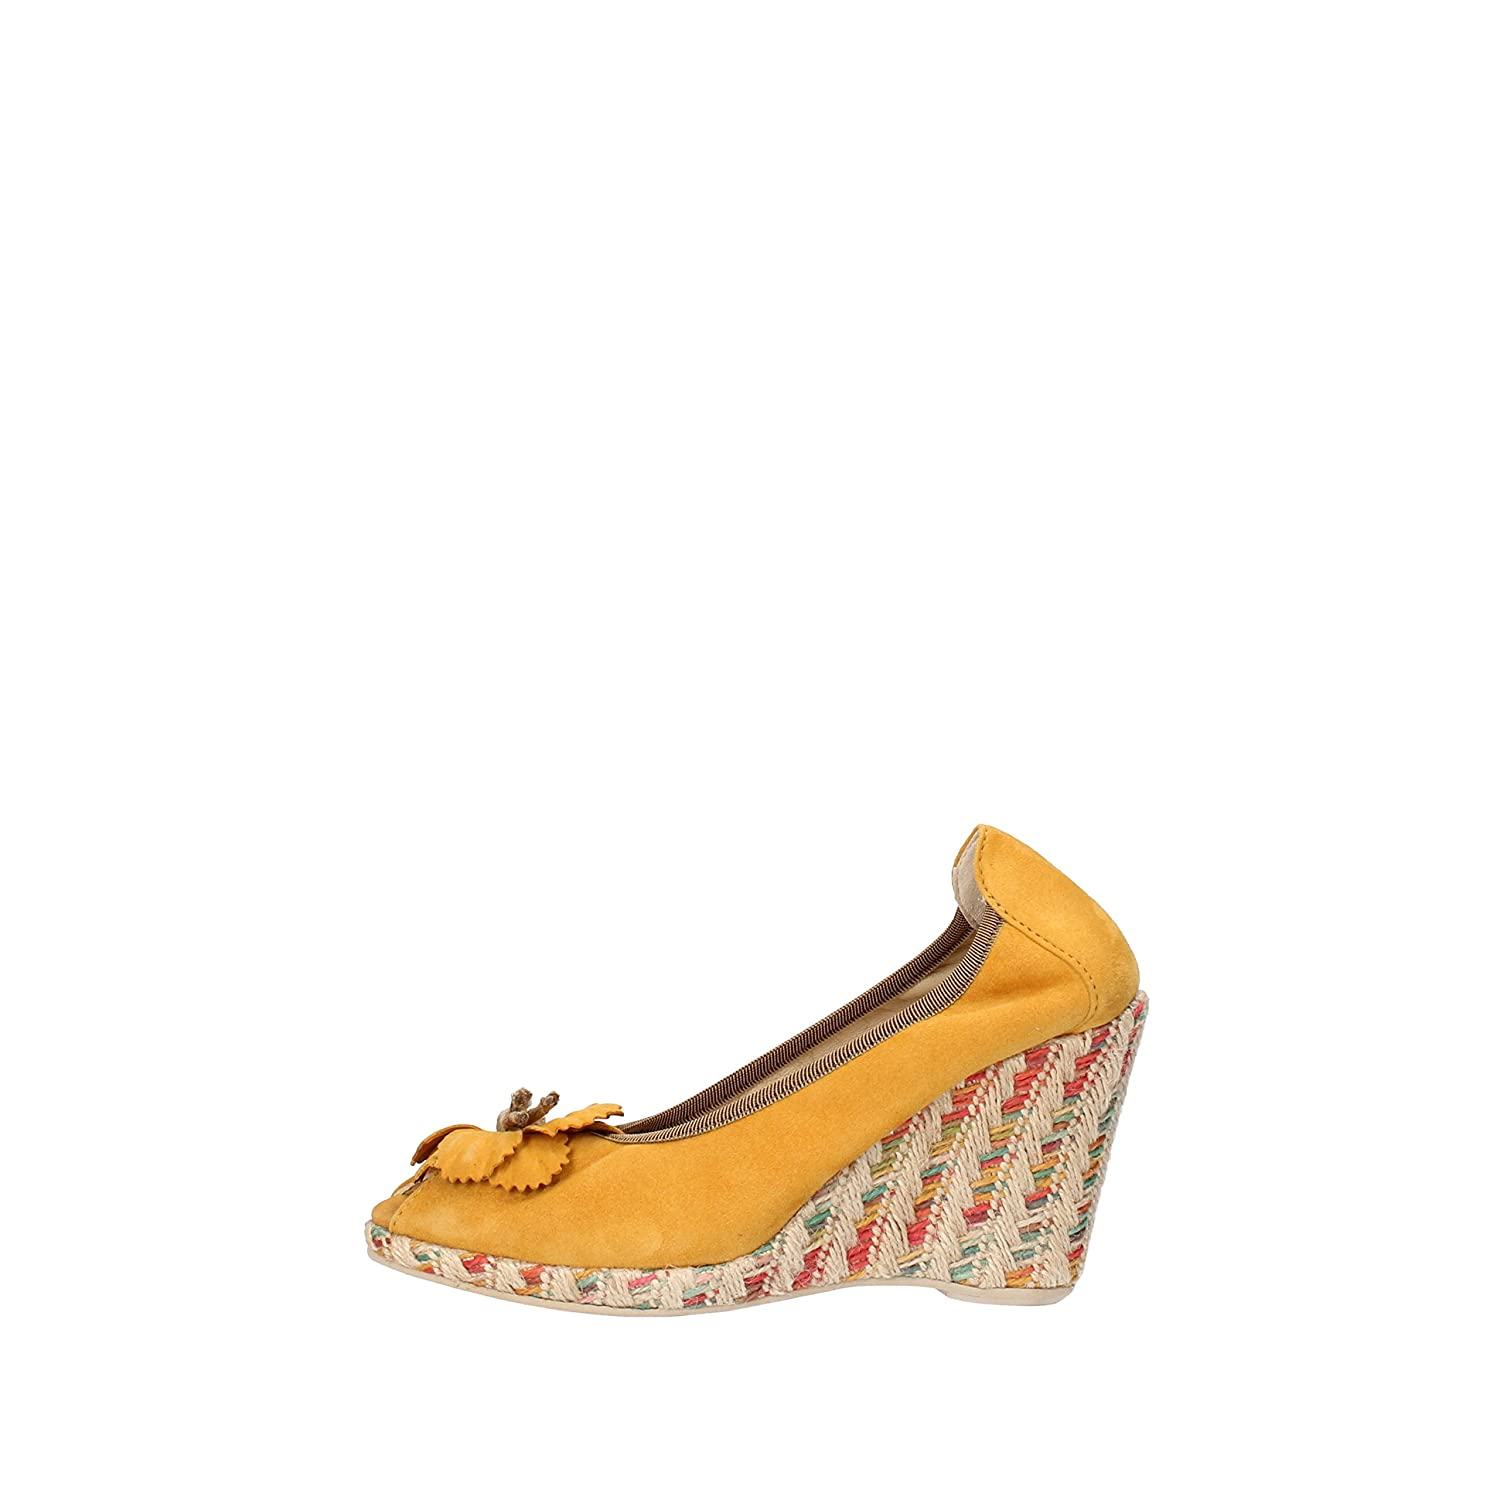 - CALPIERRE Wedges-Sandals Womens Suede Yellow